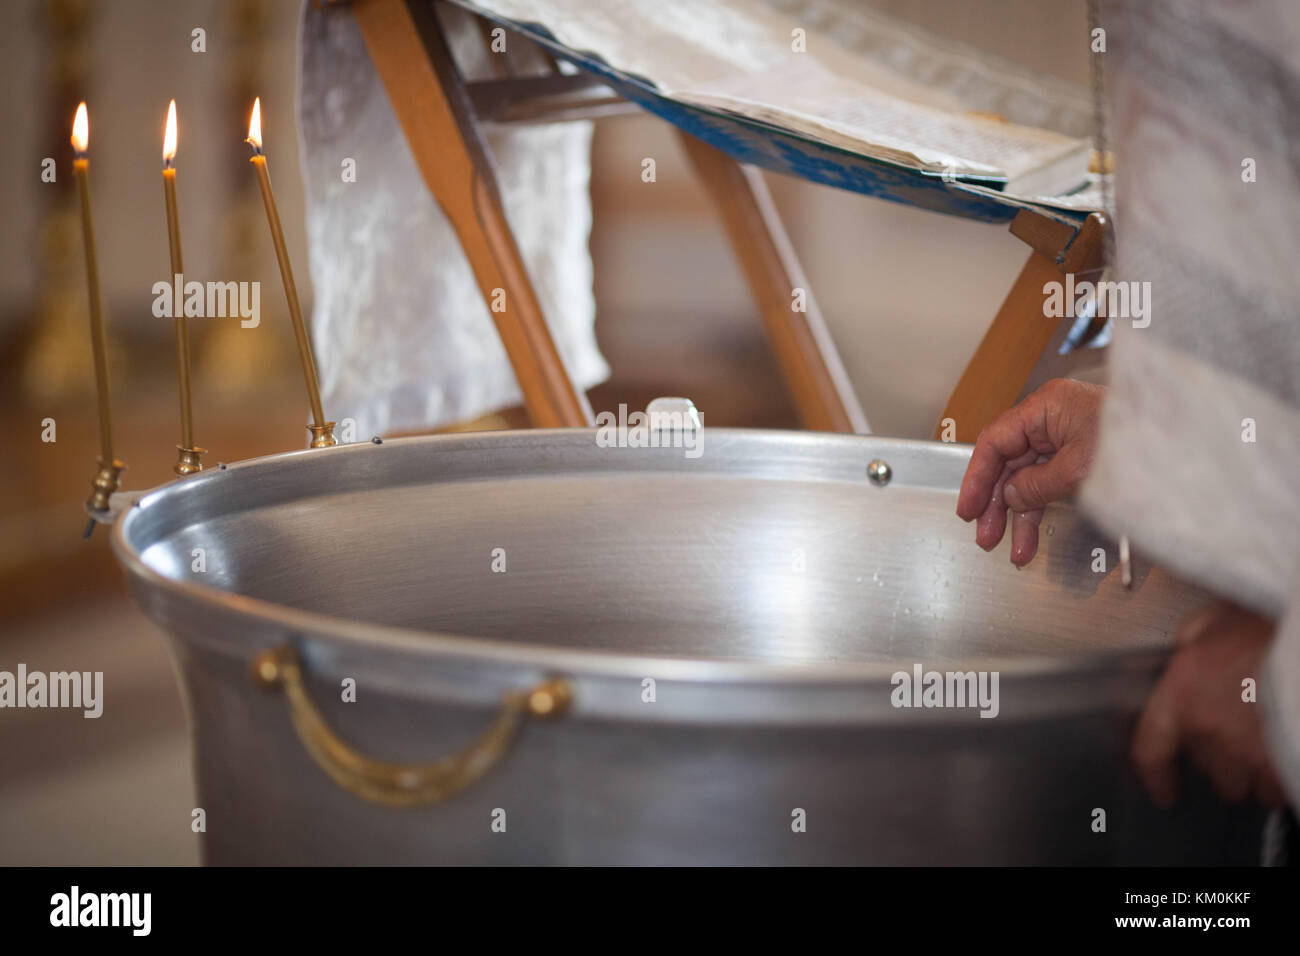 Orthodox baptism bowl of holy water and candles. - Stock Image